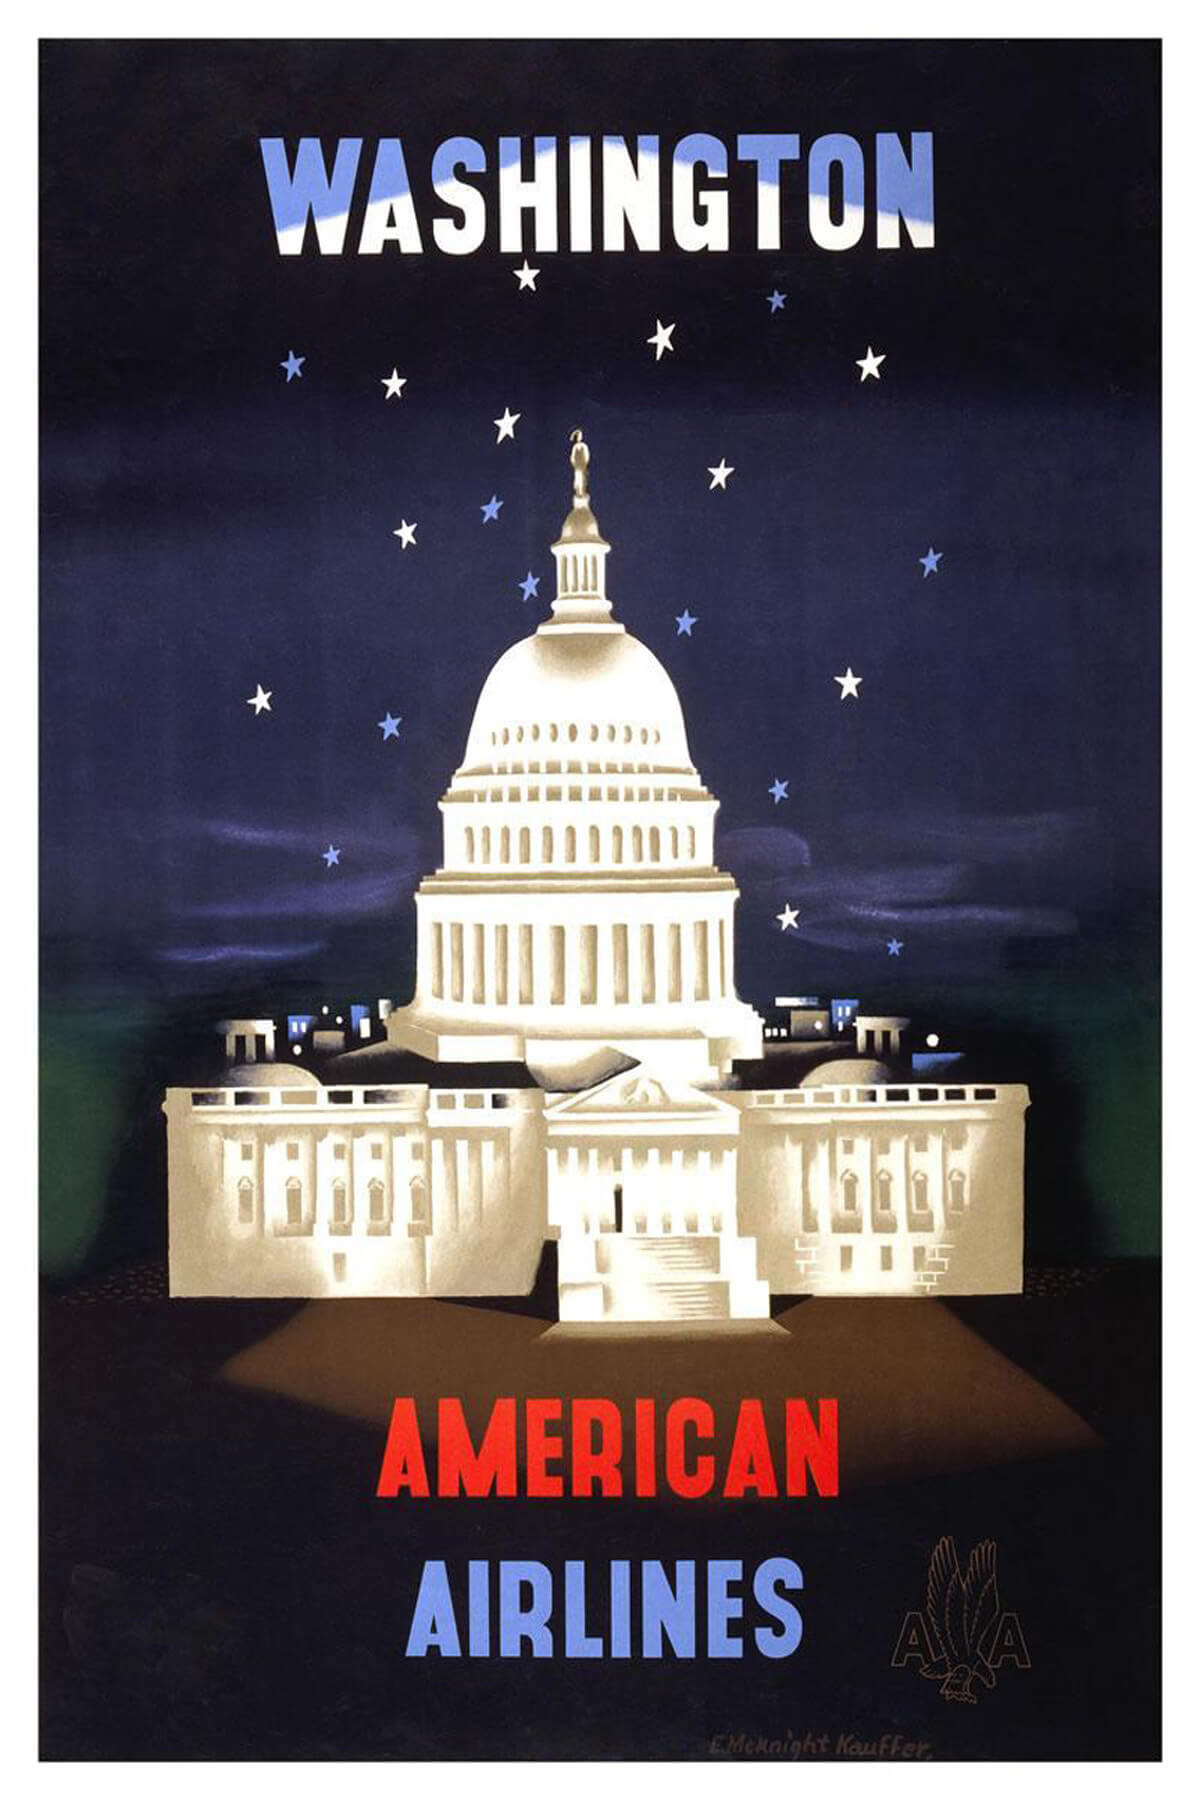 Washington D.C. American Airlines vintage travel poster